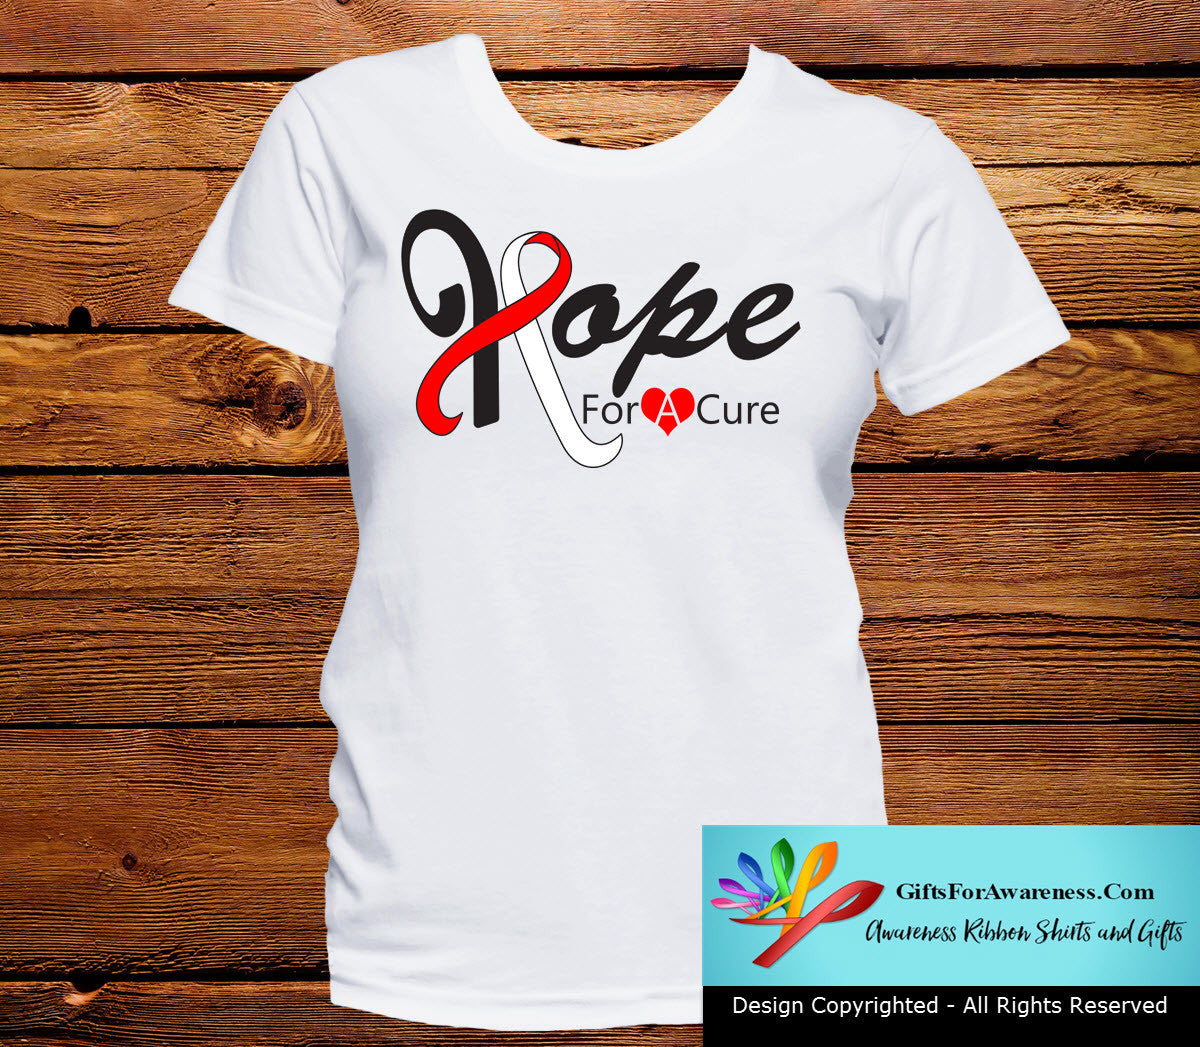 Squamous Cell Carcinoma Hope For A Cure Shirts - GiftsForAwareness